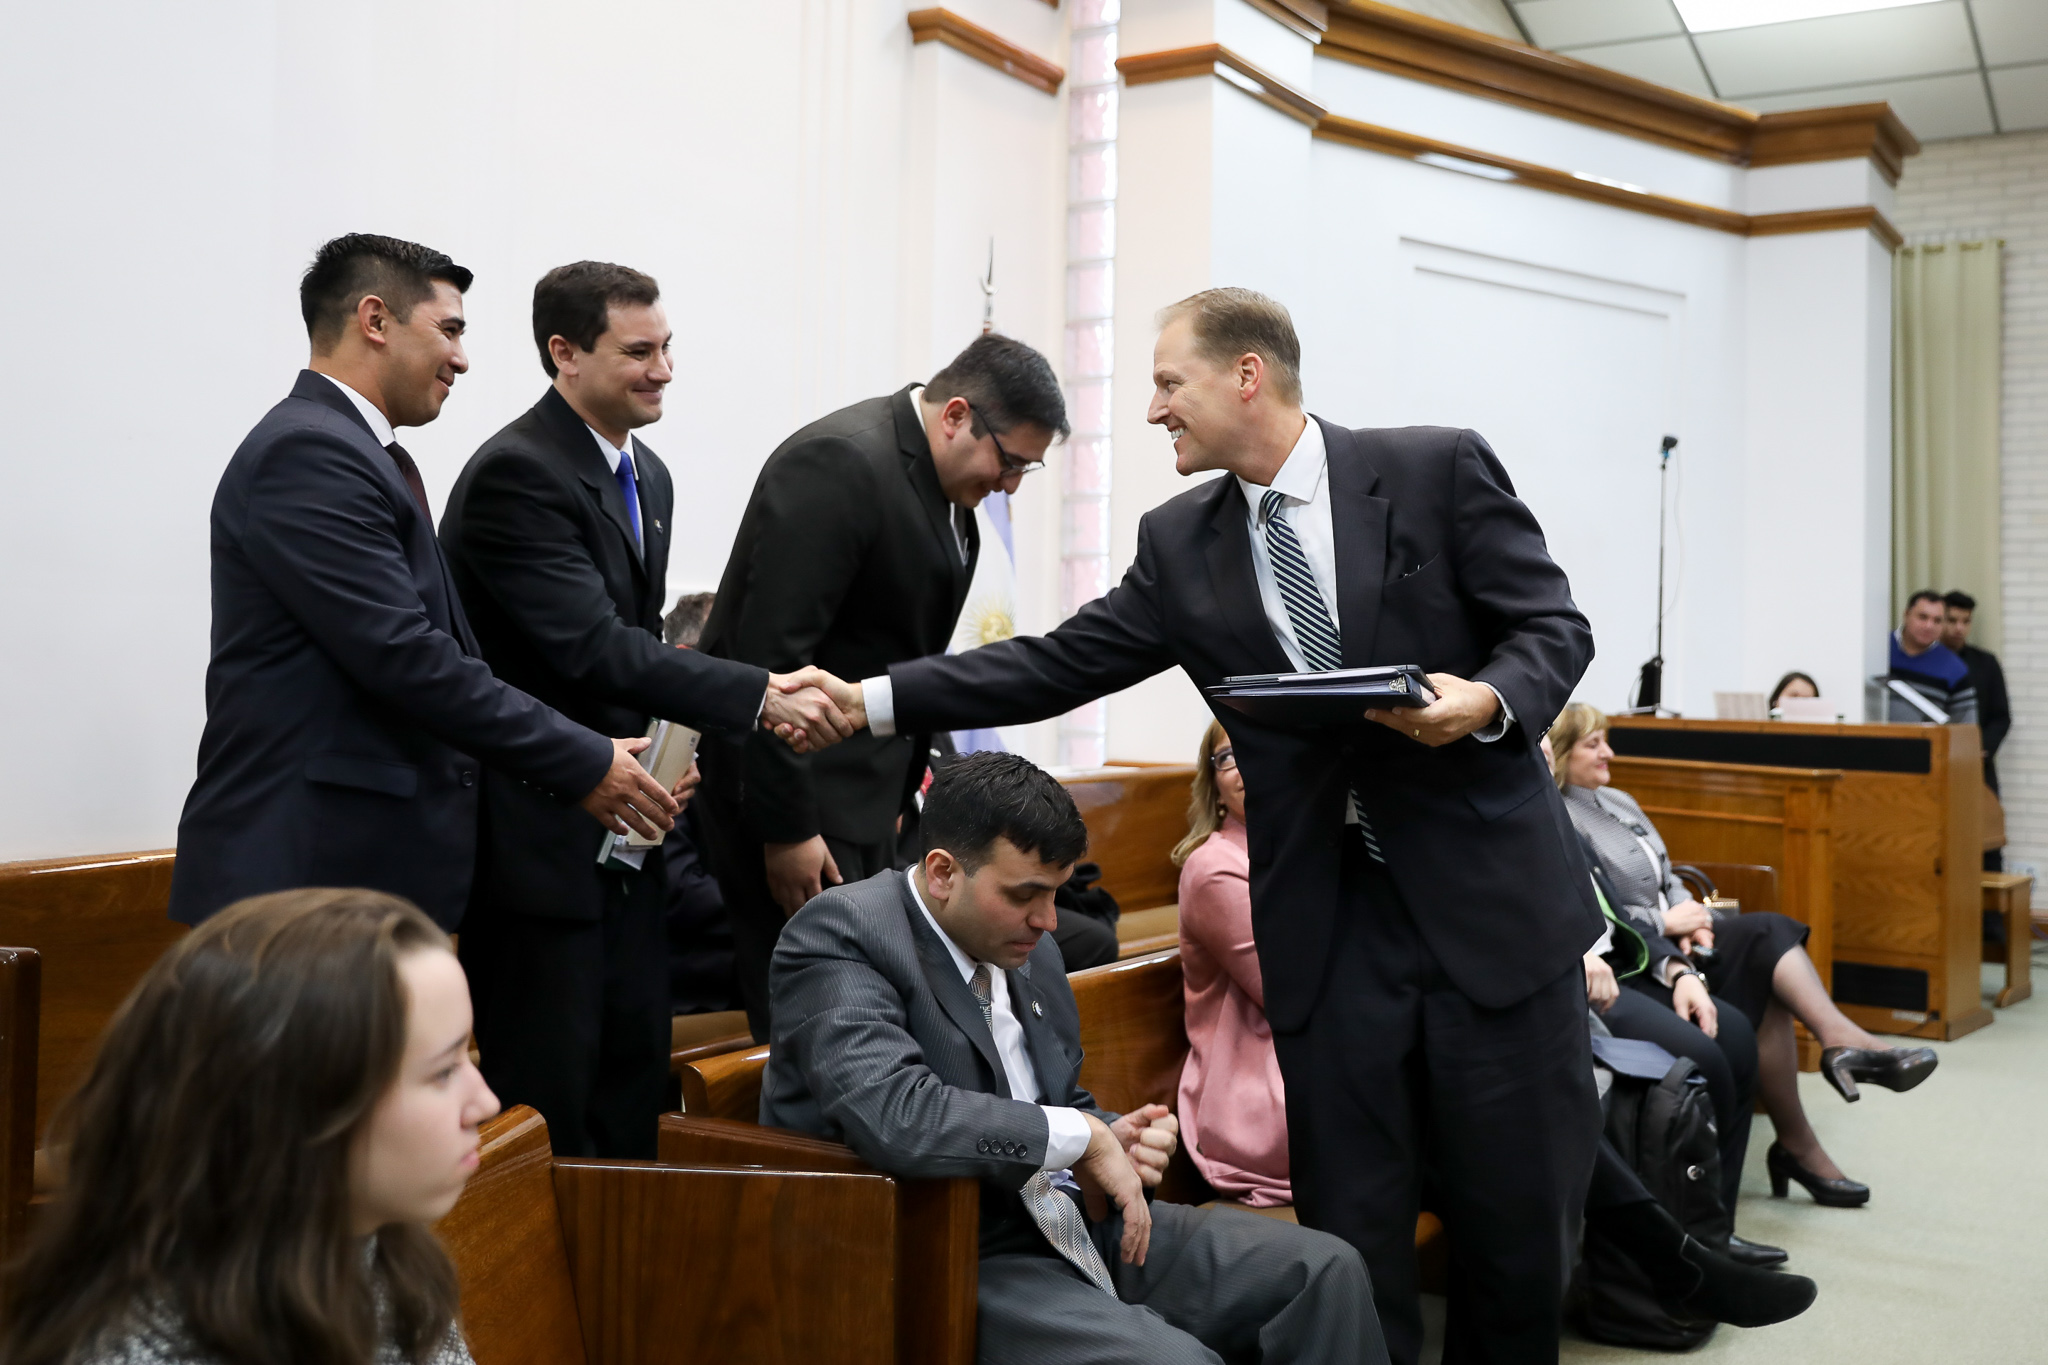 Elder Mark A. Bragg shakes hands with members of the new Tierra del Fuego Argentina Stake on June 2, 2019.